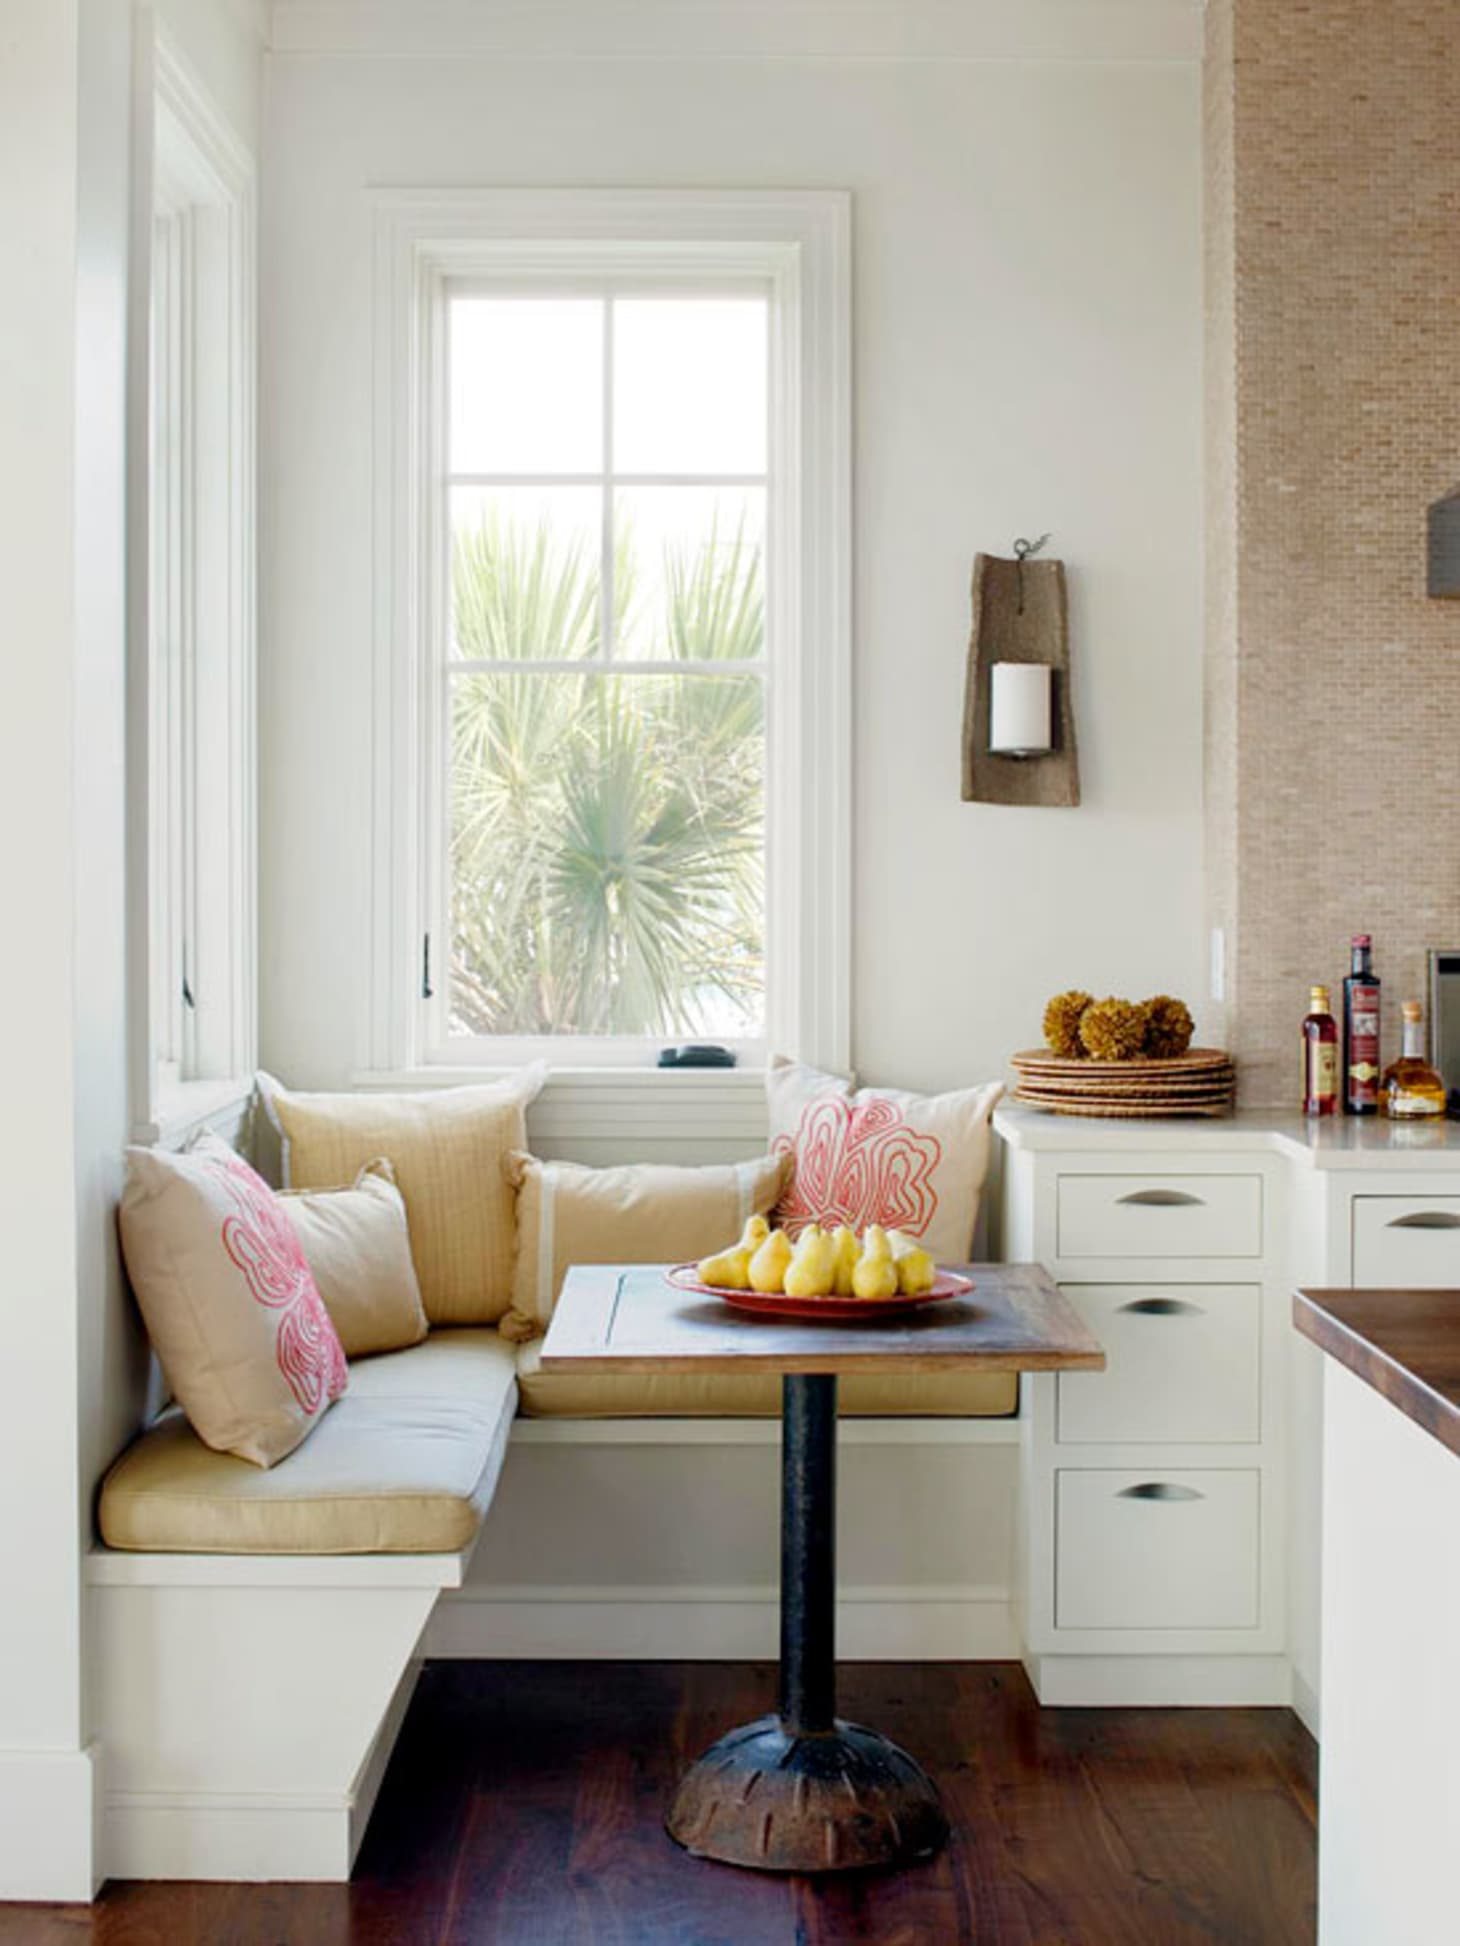 Banquette Built In Benches Add Smart Kitchen Seating Apartment